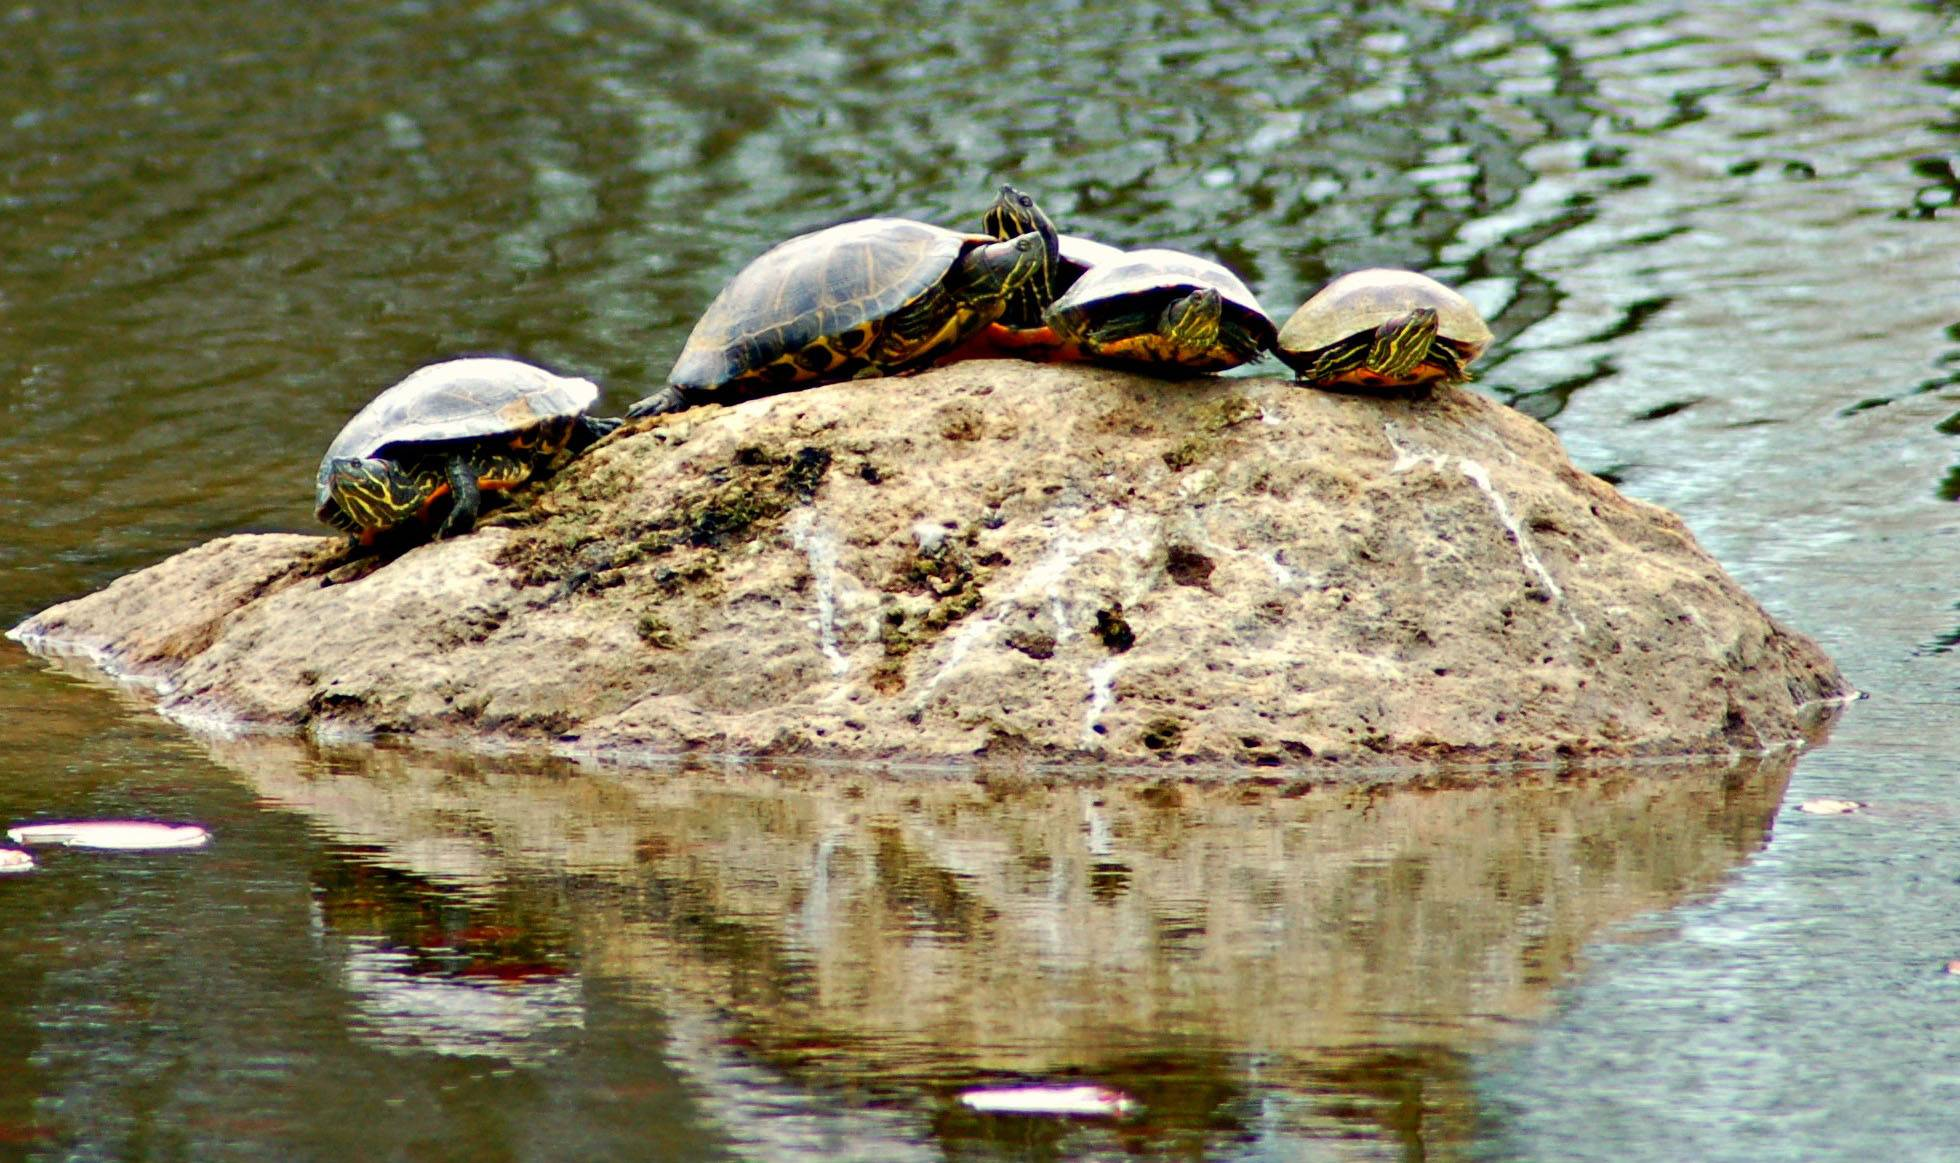 This photo was taken at the Lisle Morton Arboretum of a group of turtles on a rock in the middle of the pond. I site I've never seen there before.